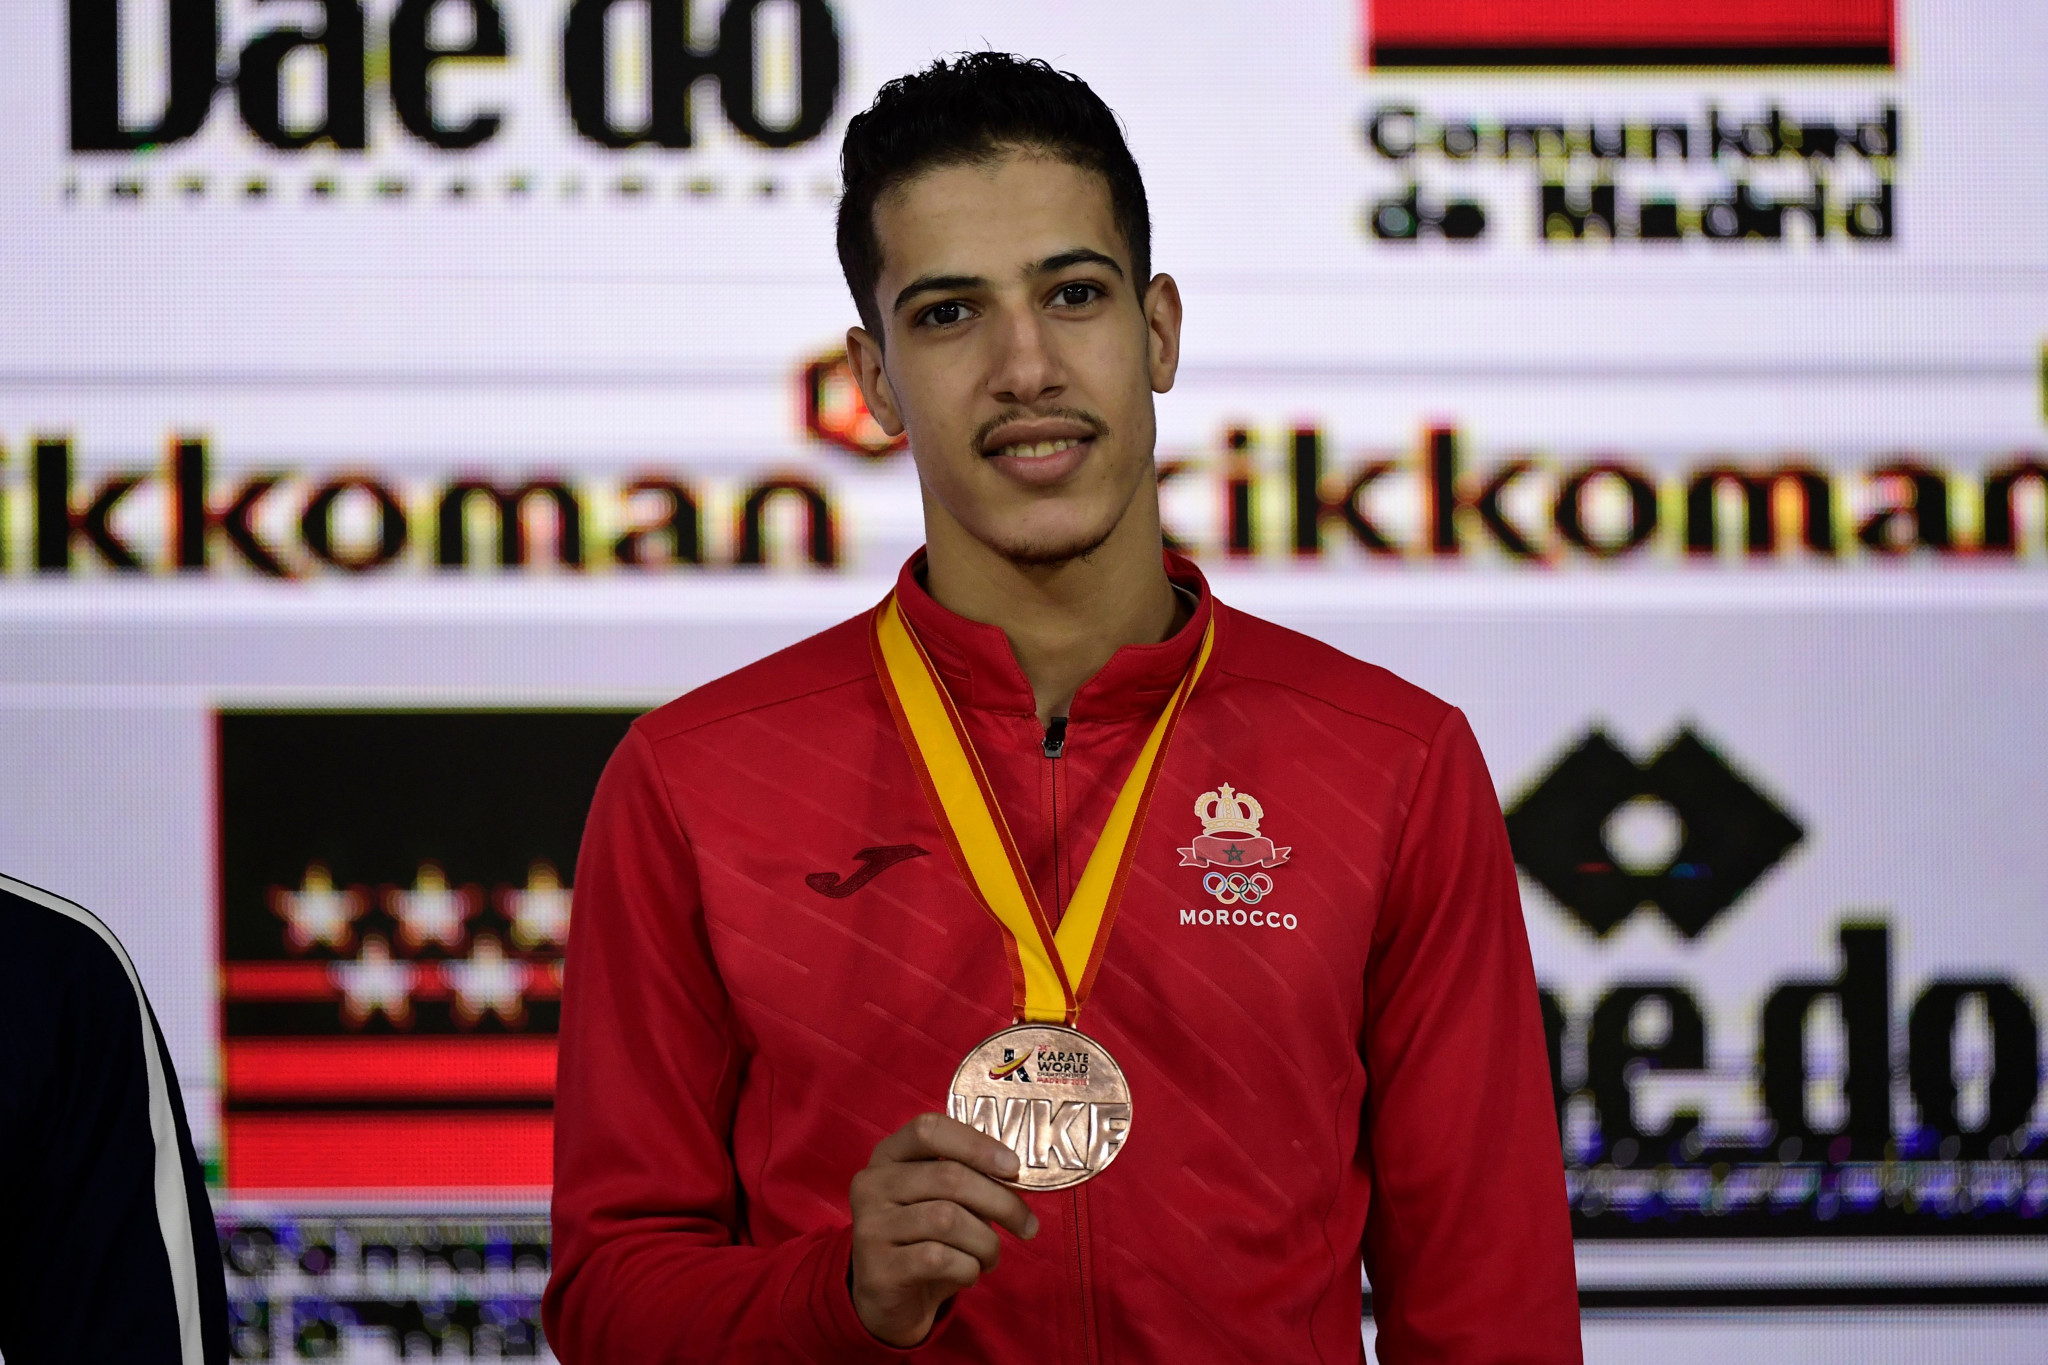 Morocco's Abdessalam Ameknassi, a 2018 world bronze medallist, had to settle for second place in the men's kumite under-60kg ©Getty Images